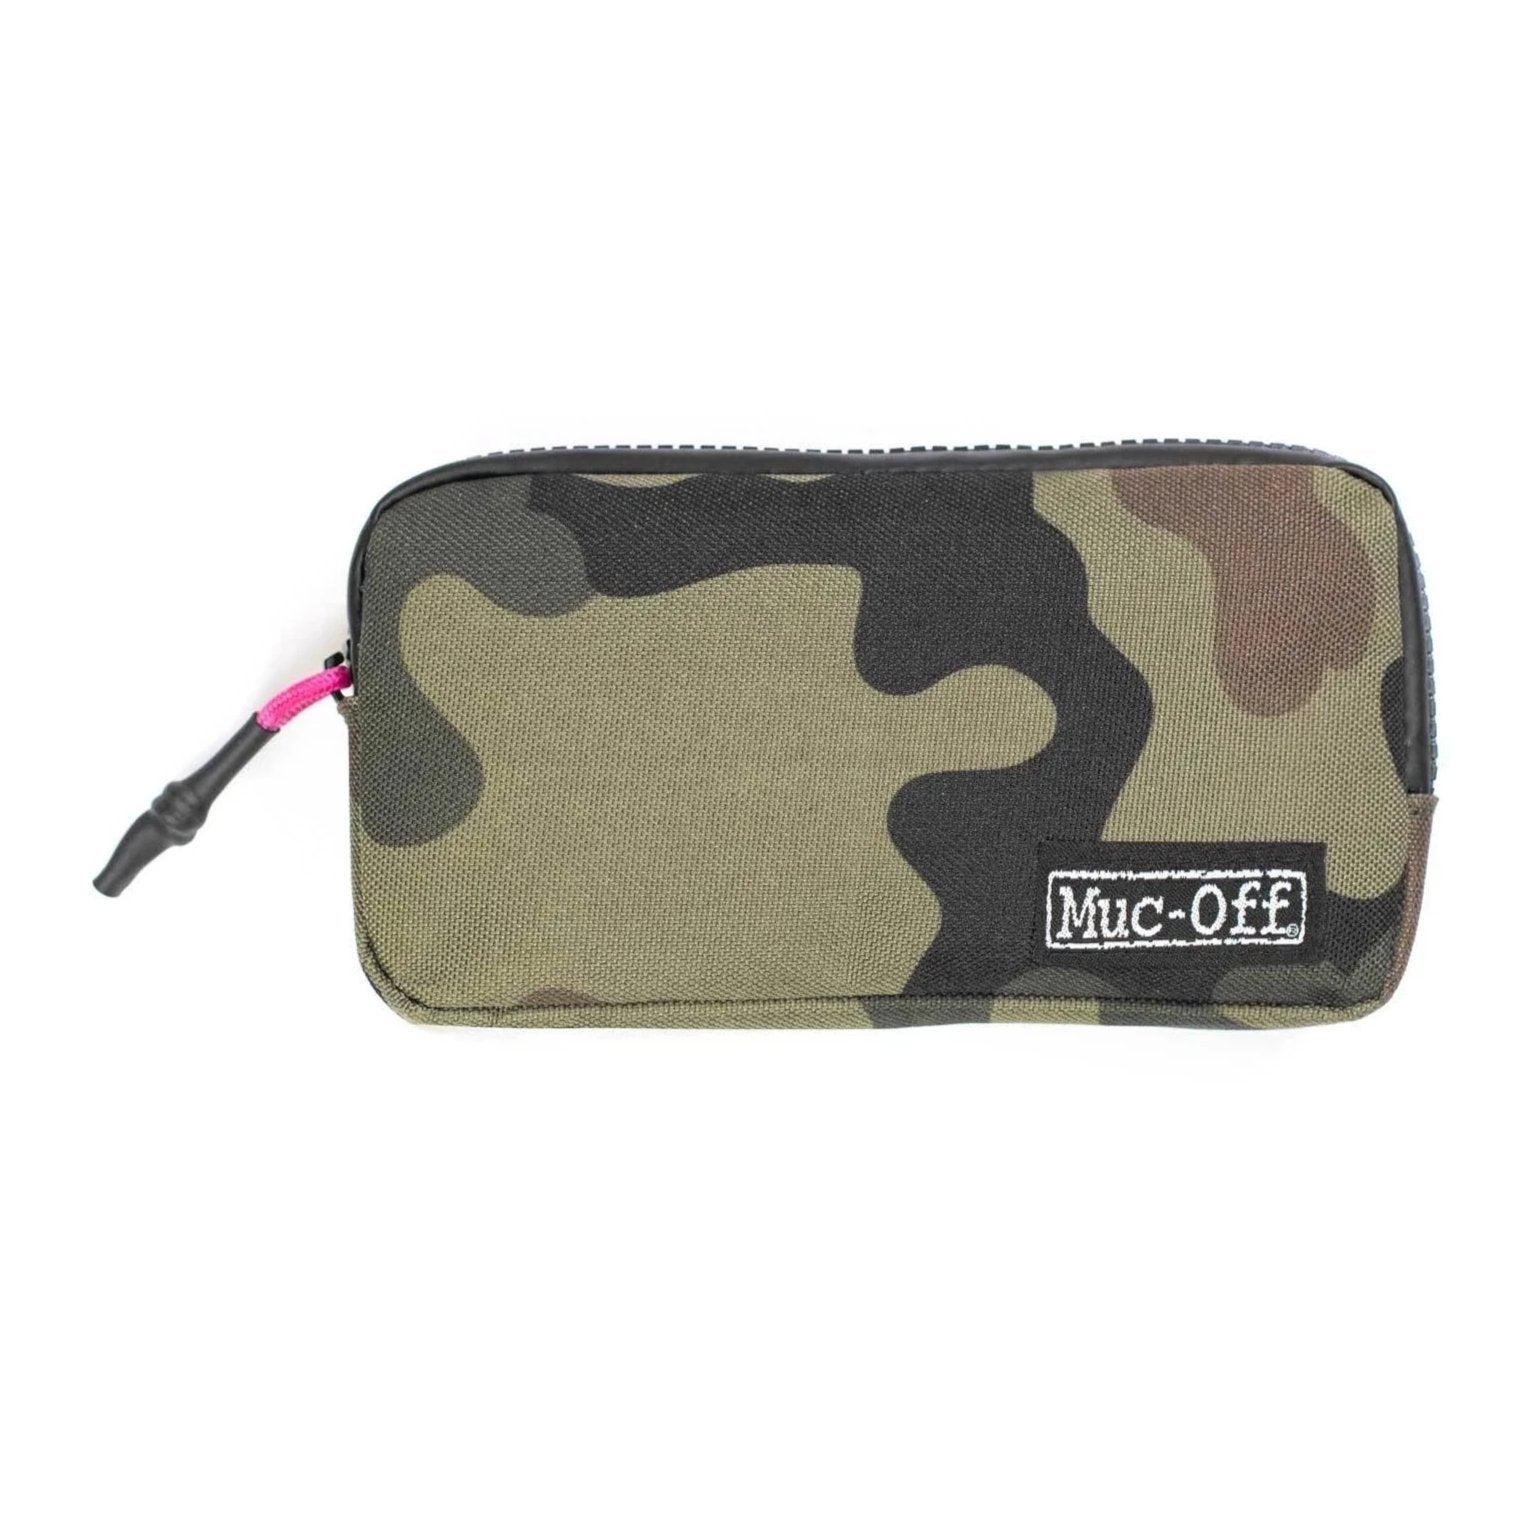 Muc-Off Tools MUC-OFF ESSENTIALS CASE